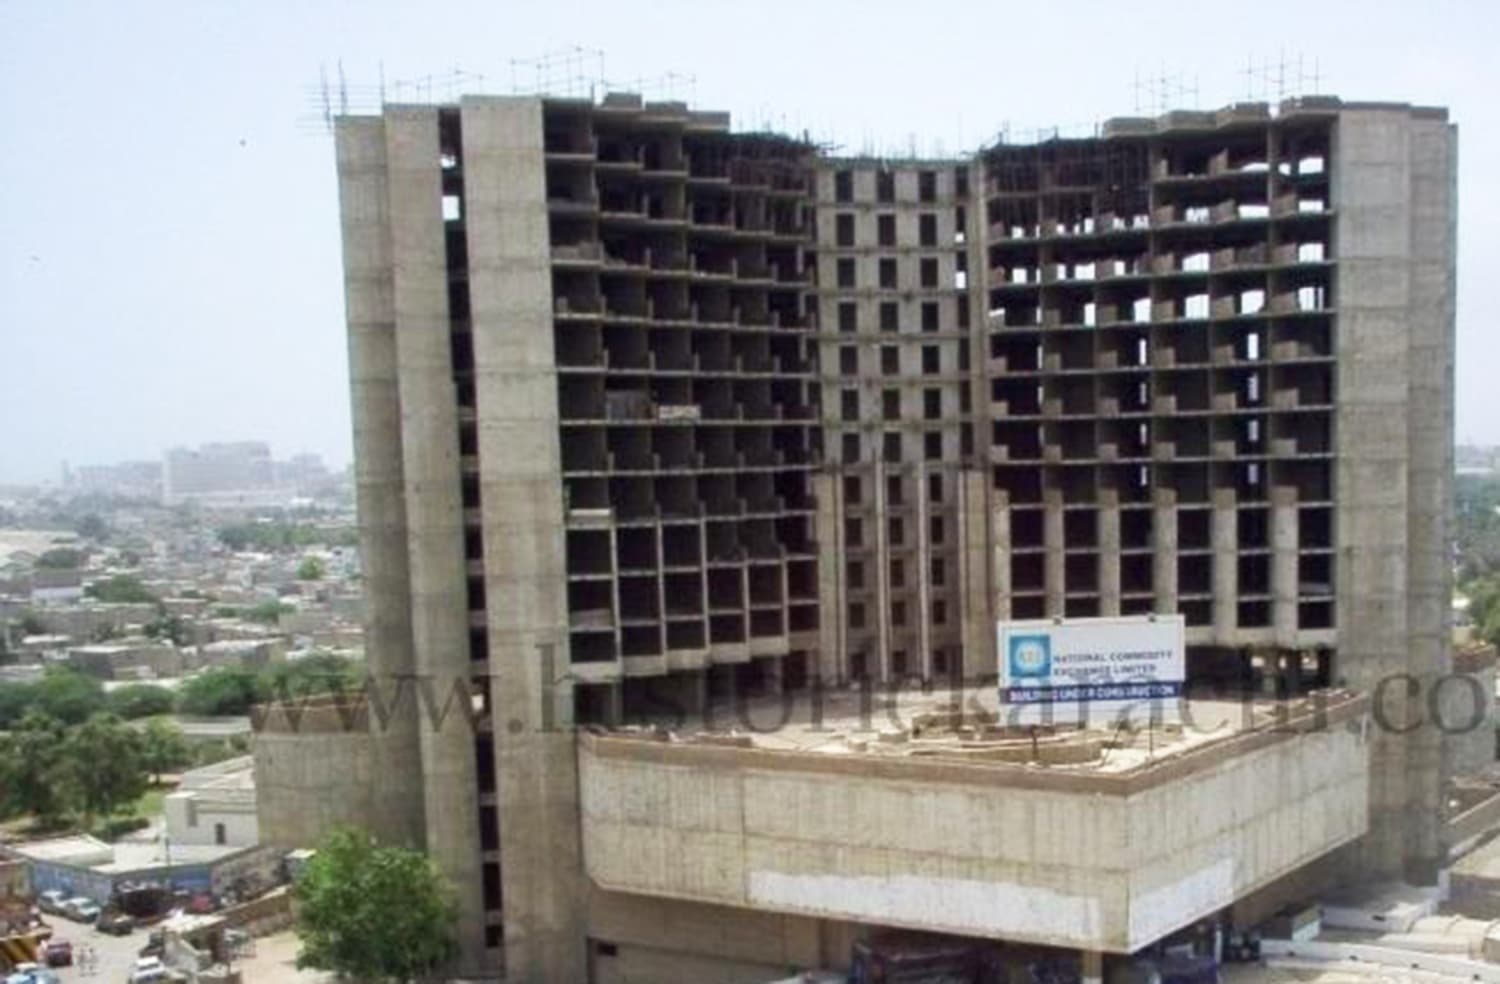 The incomplete building of what was supposed to be one of the largest 5-star hotels in Asia.